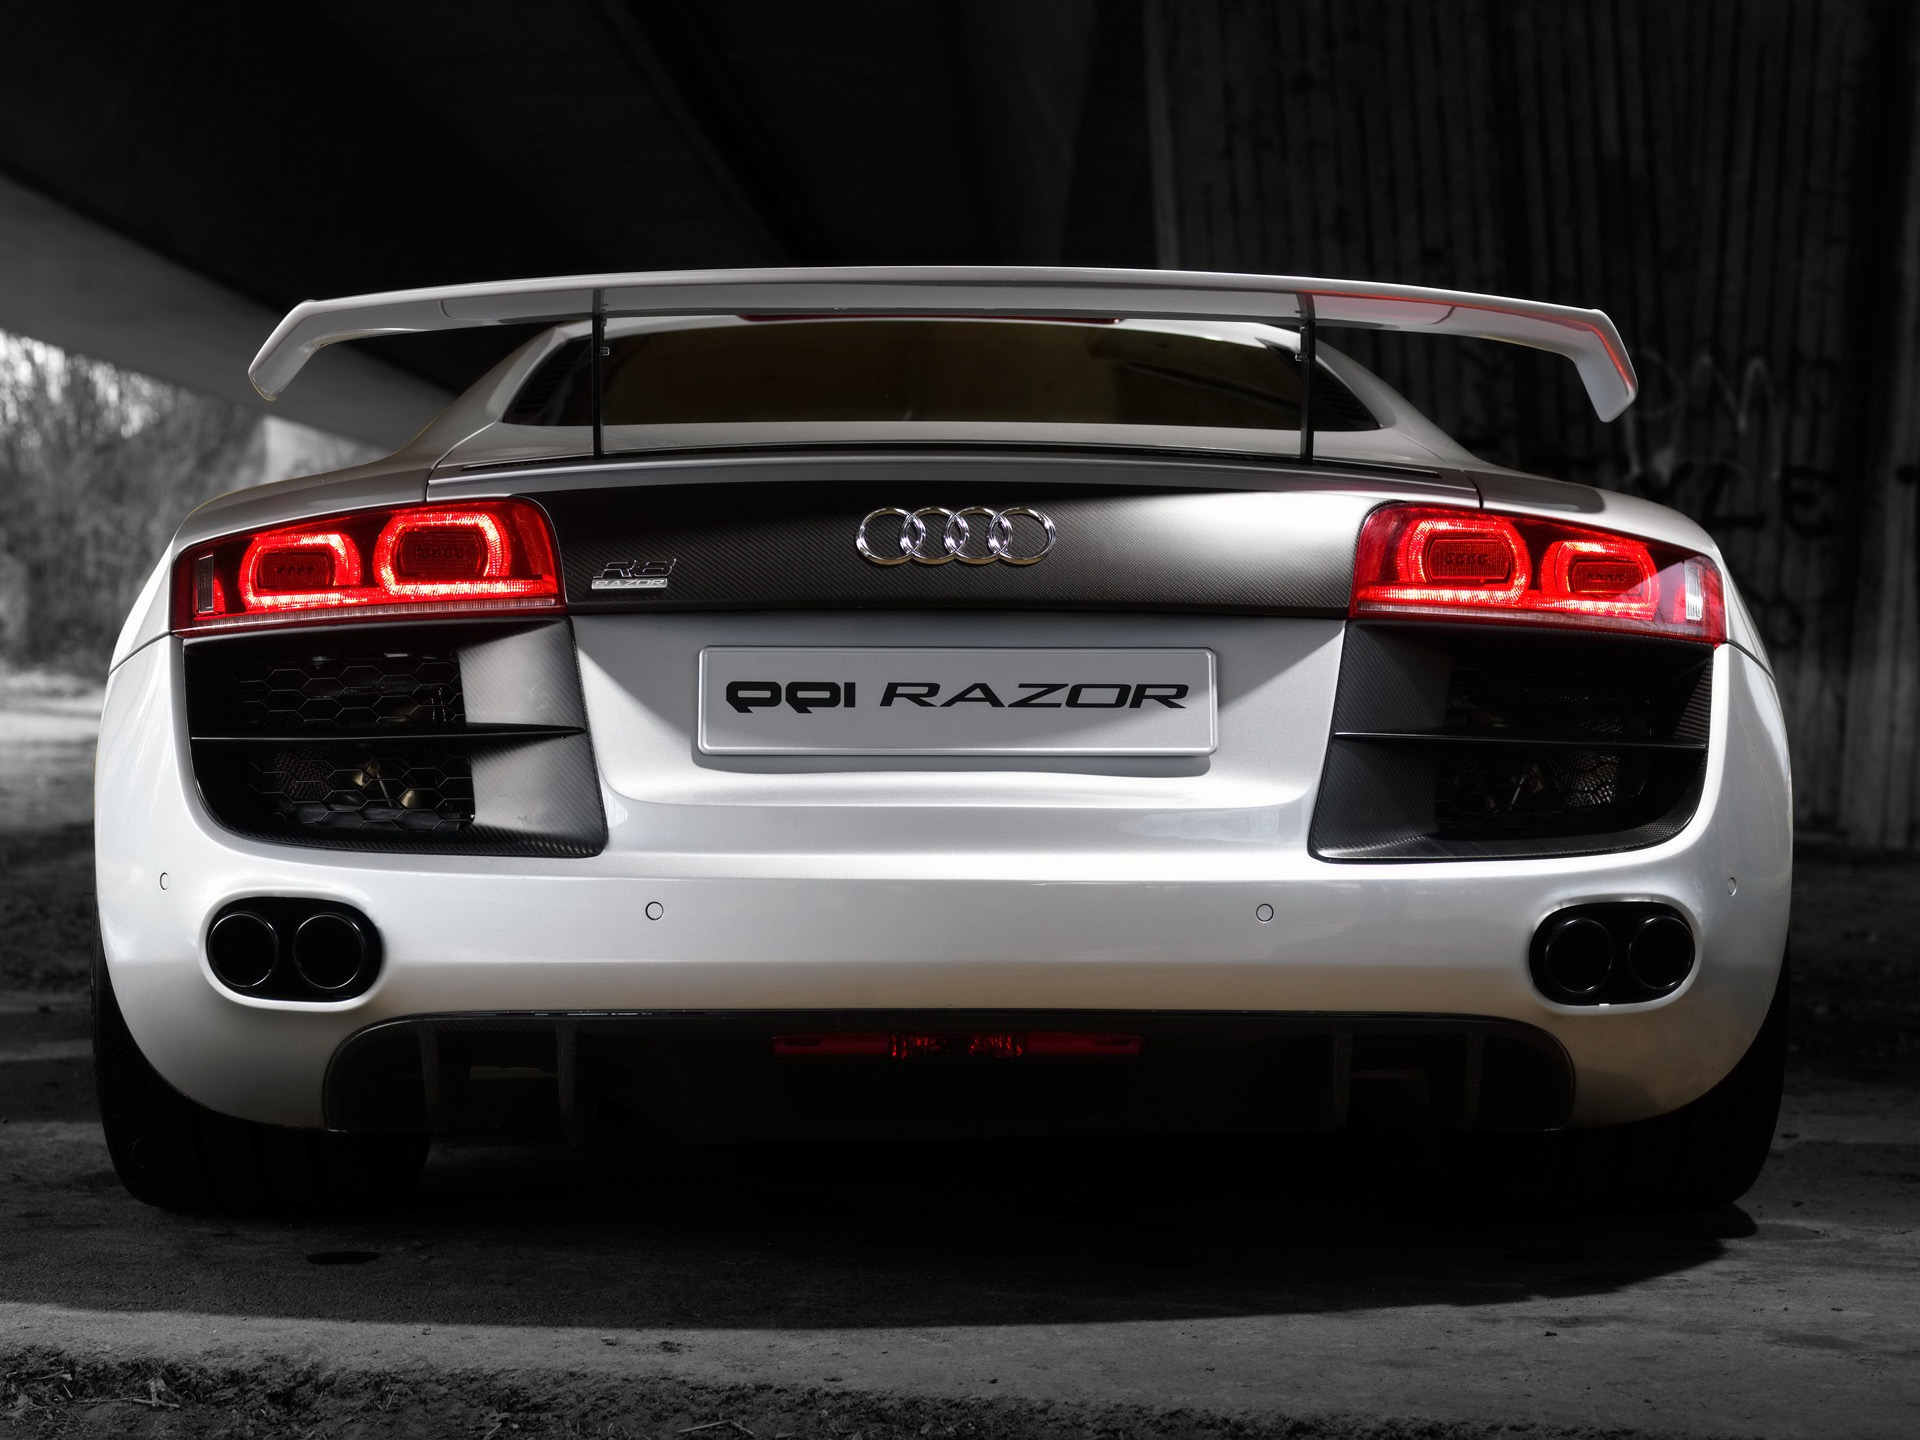 Audi Car Wallpaper Wallpapers For Free Download About - Audi car pics